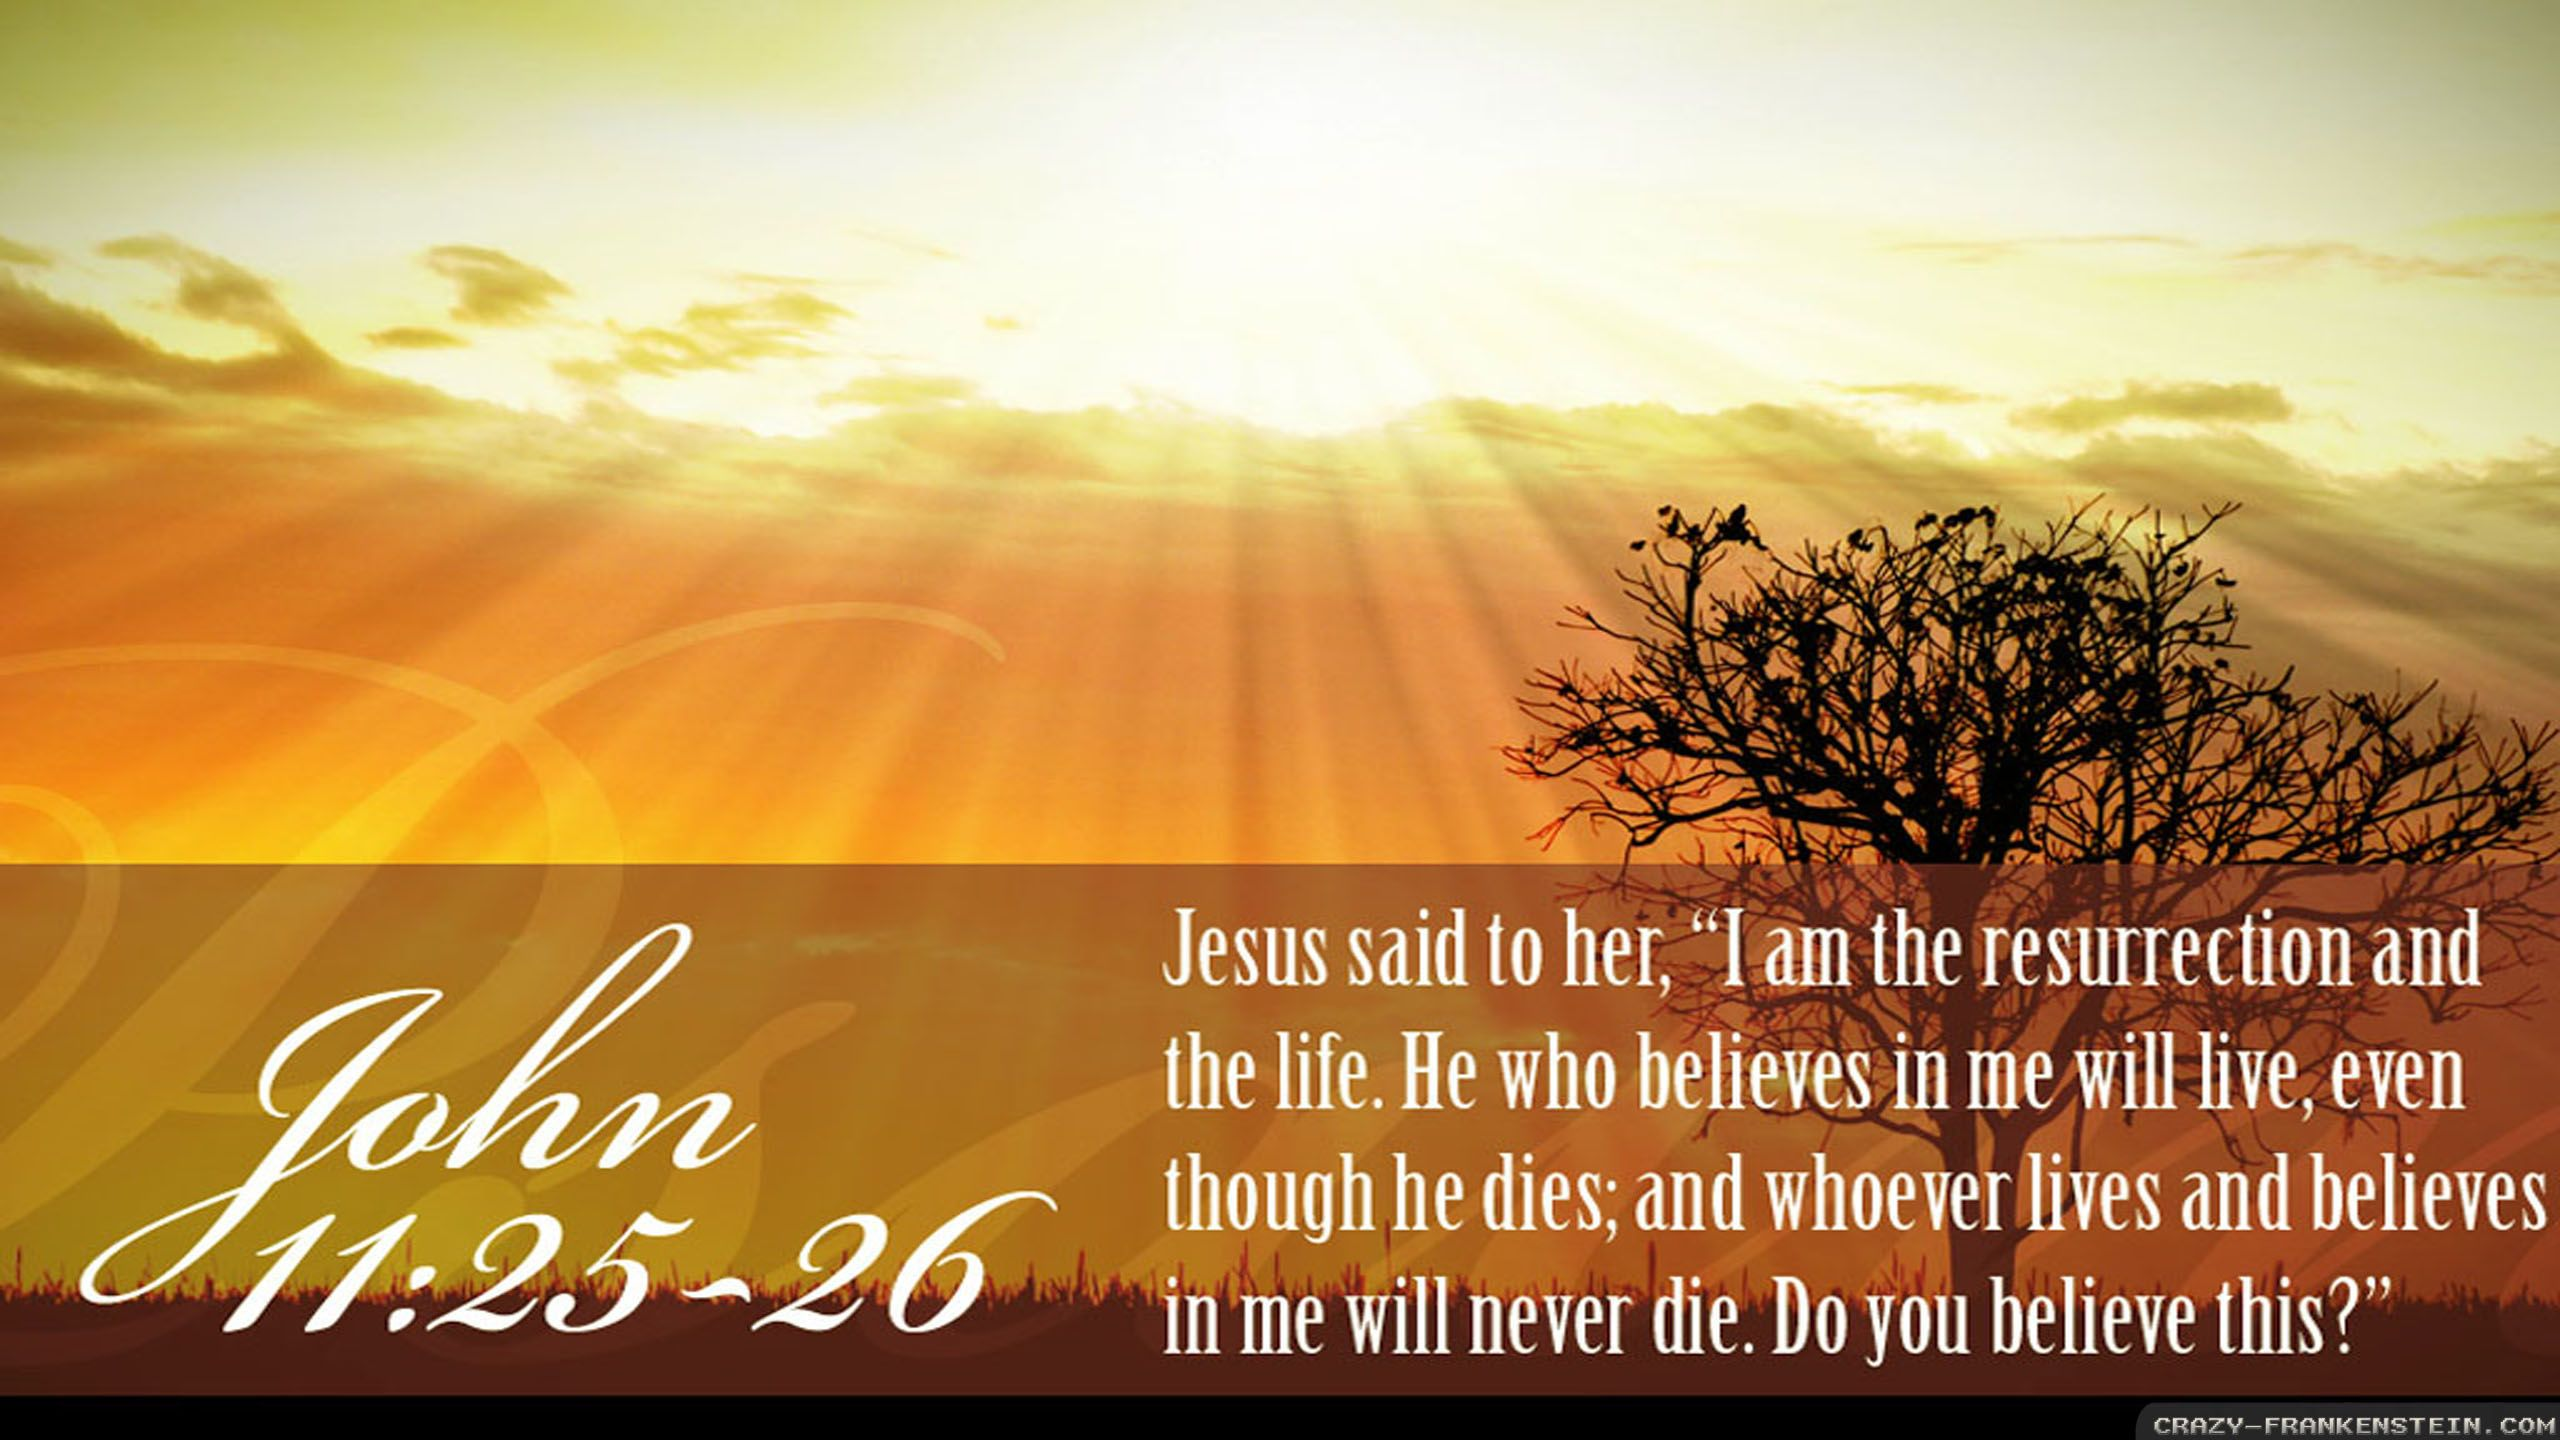 Pinterest Christian Quotes: Resurrection Sunday Quotes - Google Search